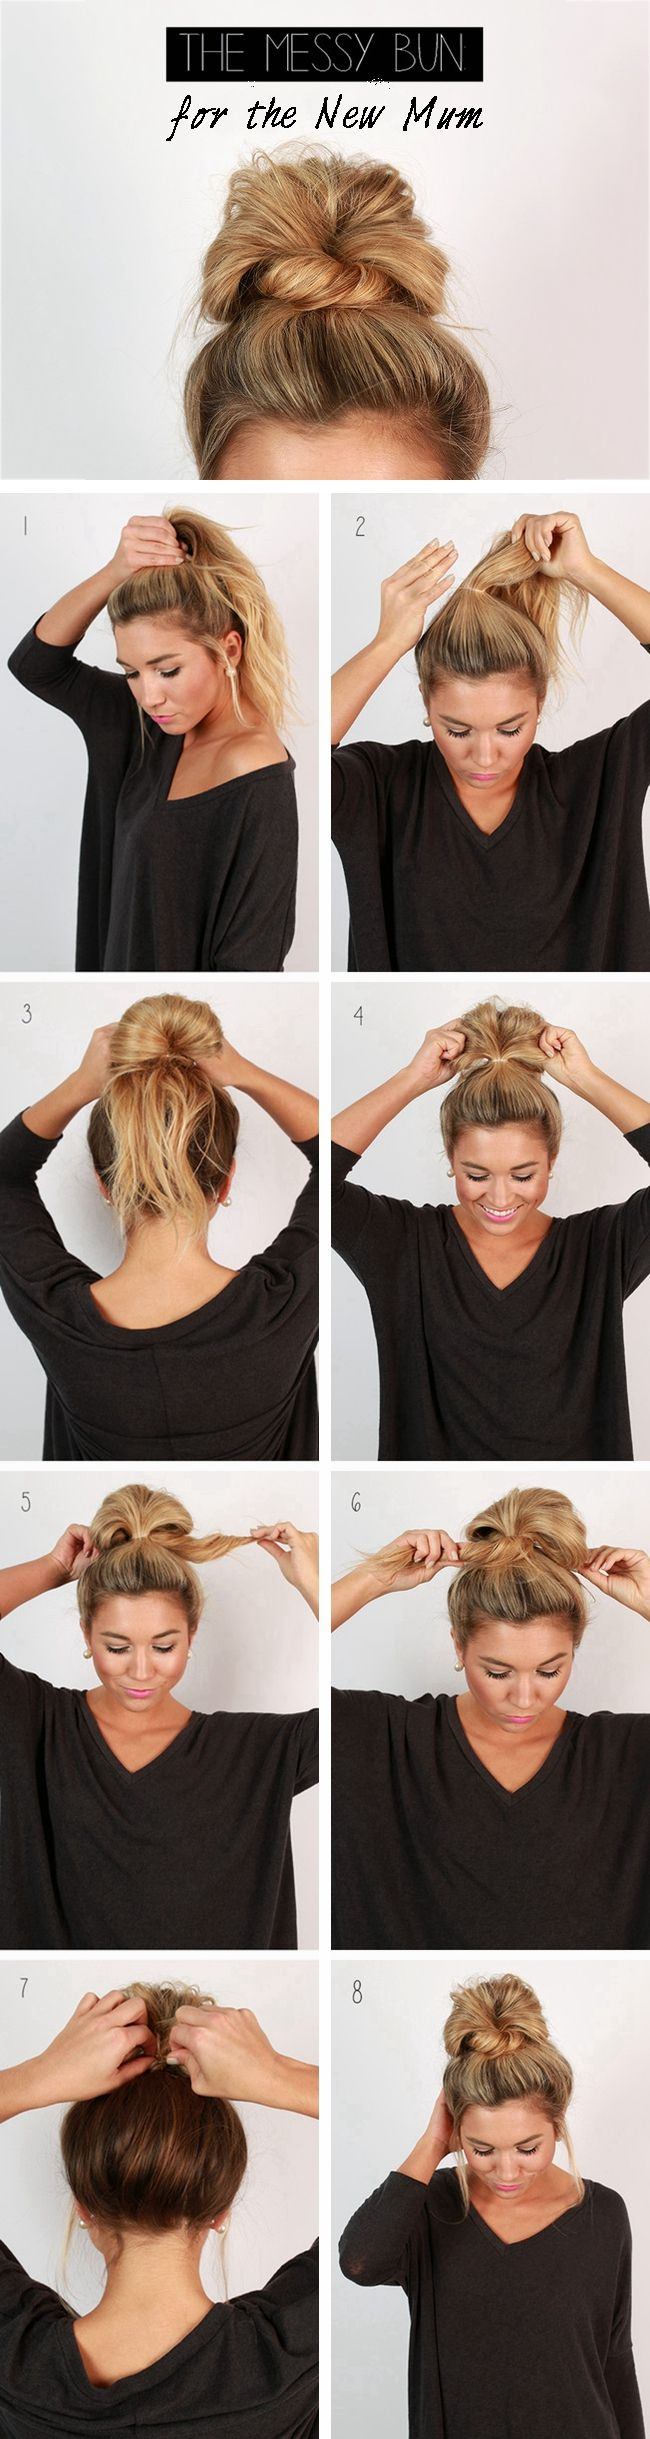 Tremendous 1000 Ideas About Bun Hairstyles On Pinterest Haircuts Hairstyles For Men Maxibearus